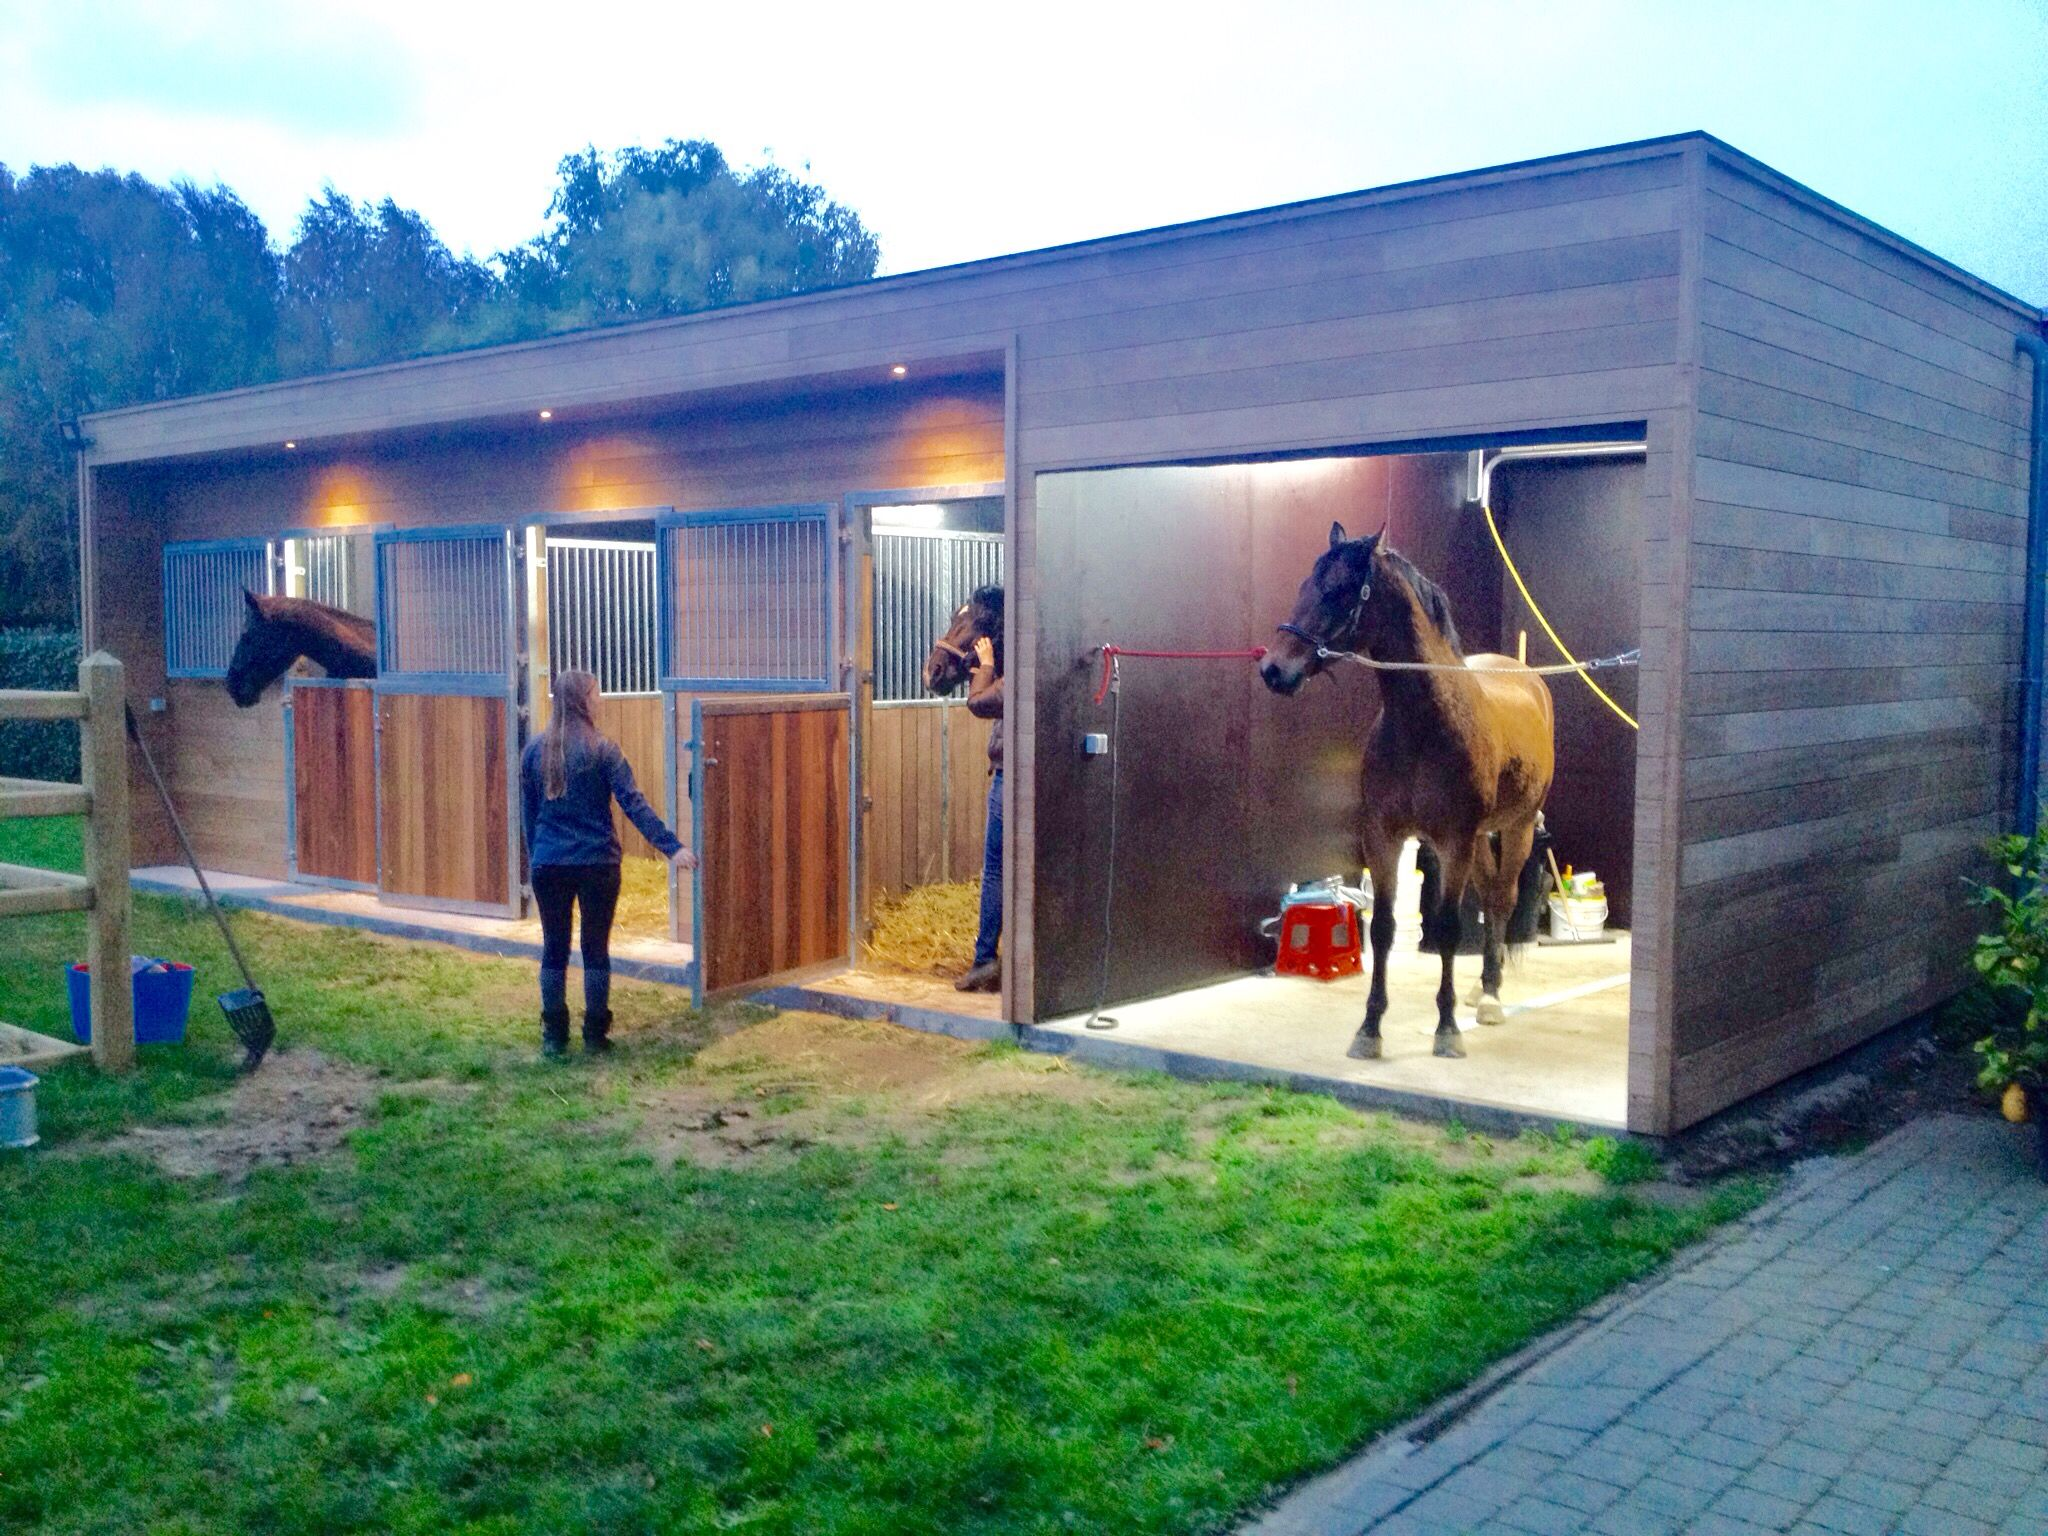 Awesome Paardenstal Design Small Modern Horse Barn And Wash Stall Ive Seen And I  Love It   Horse Barn Design Ideas